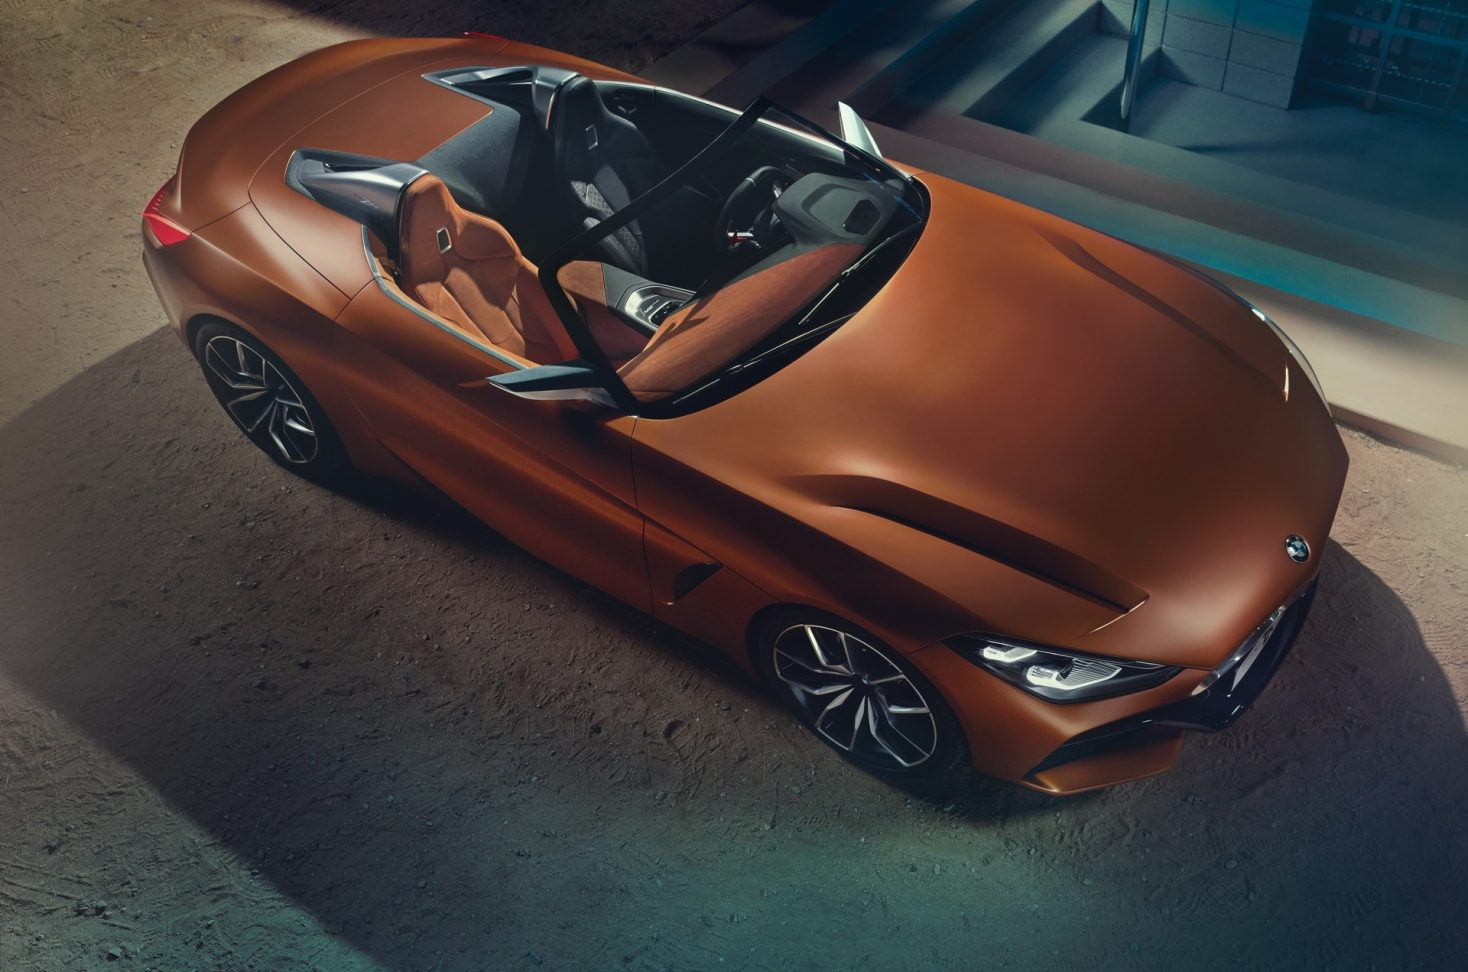 2019 Bmw Z4 - Review, Interior, Pricing, Design, Engine